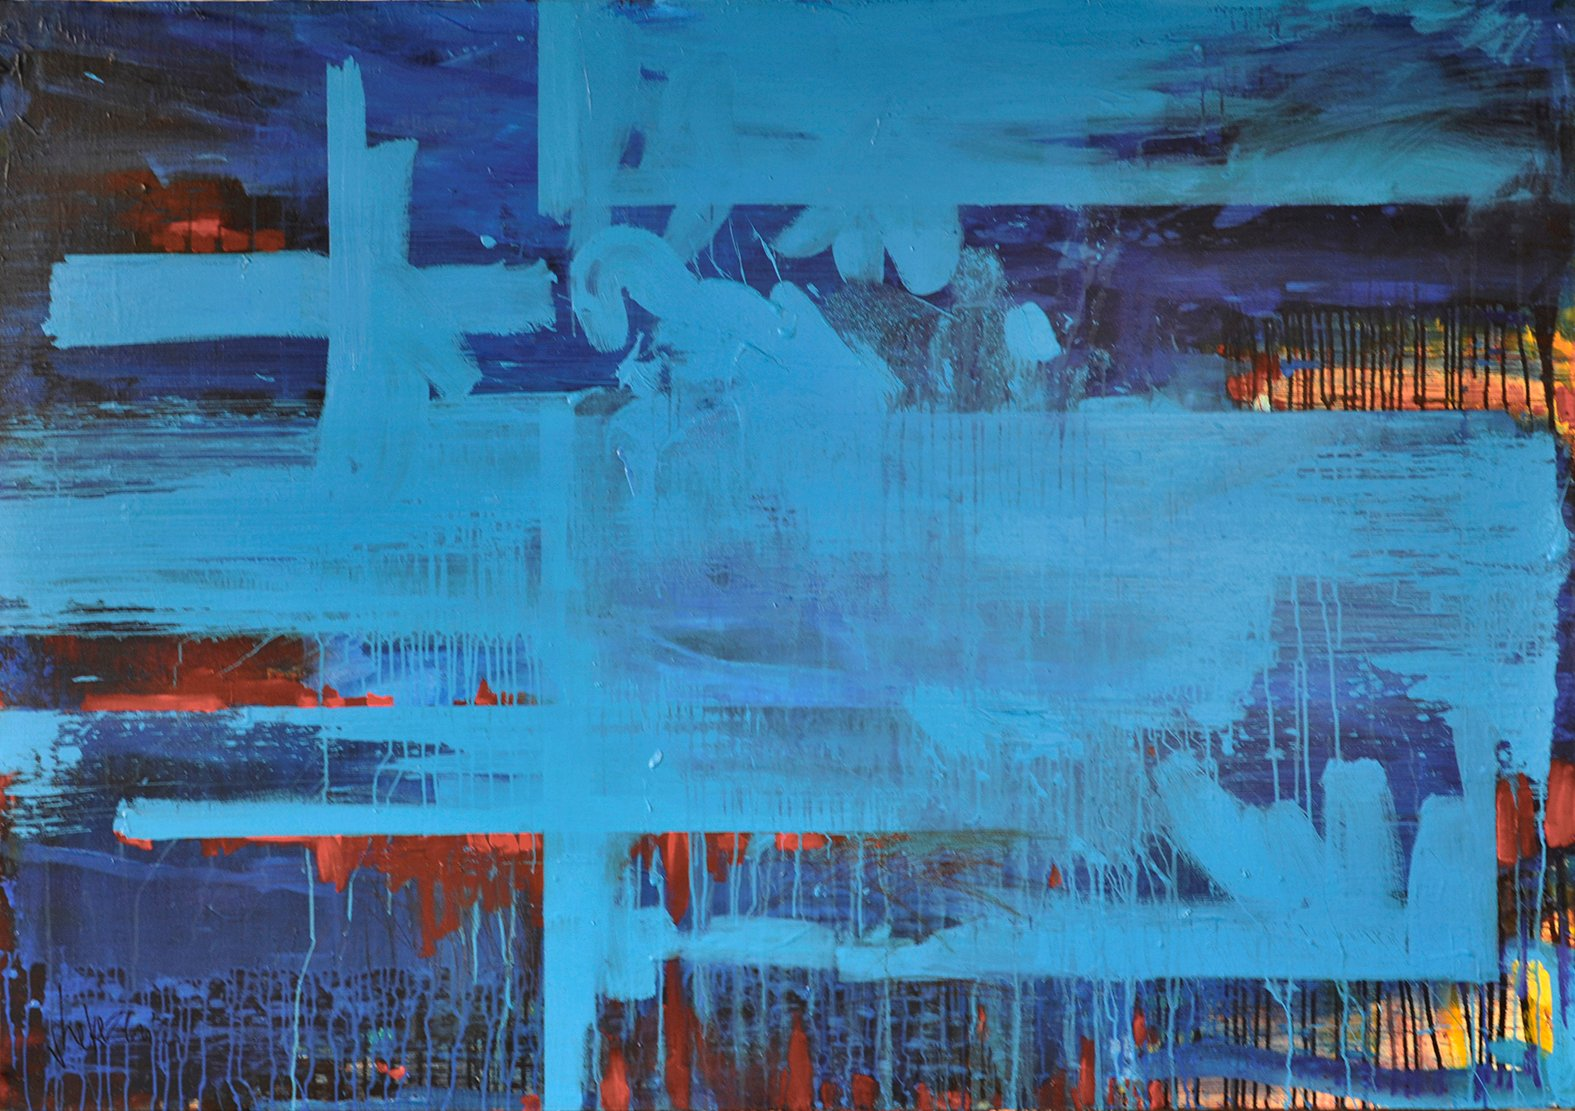 ON THE NIGHTBOAT TO CAIRO #2 – 200 x 134 cm – olie- en acrylverf op do